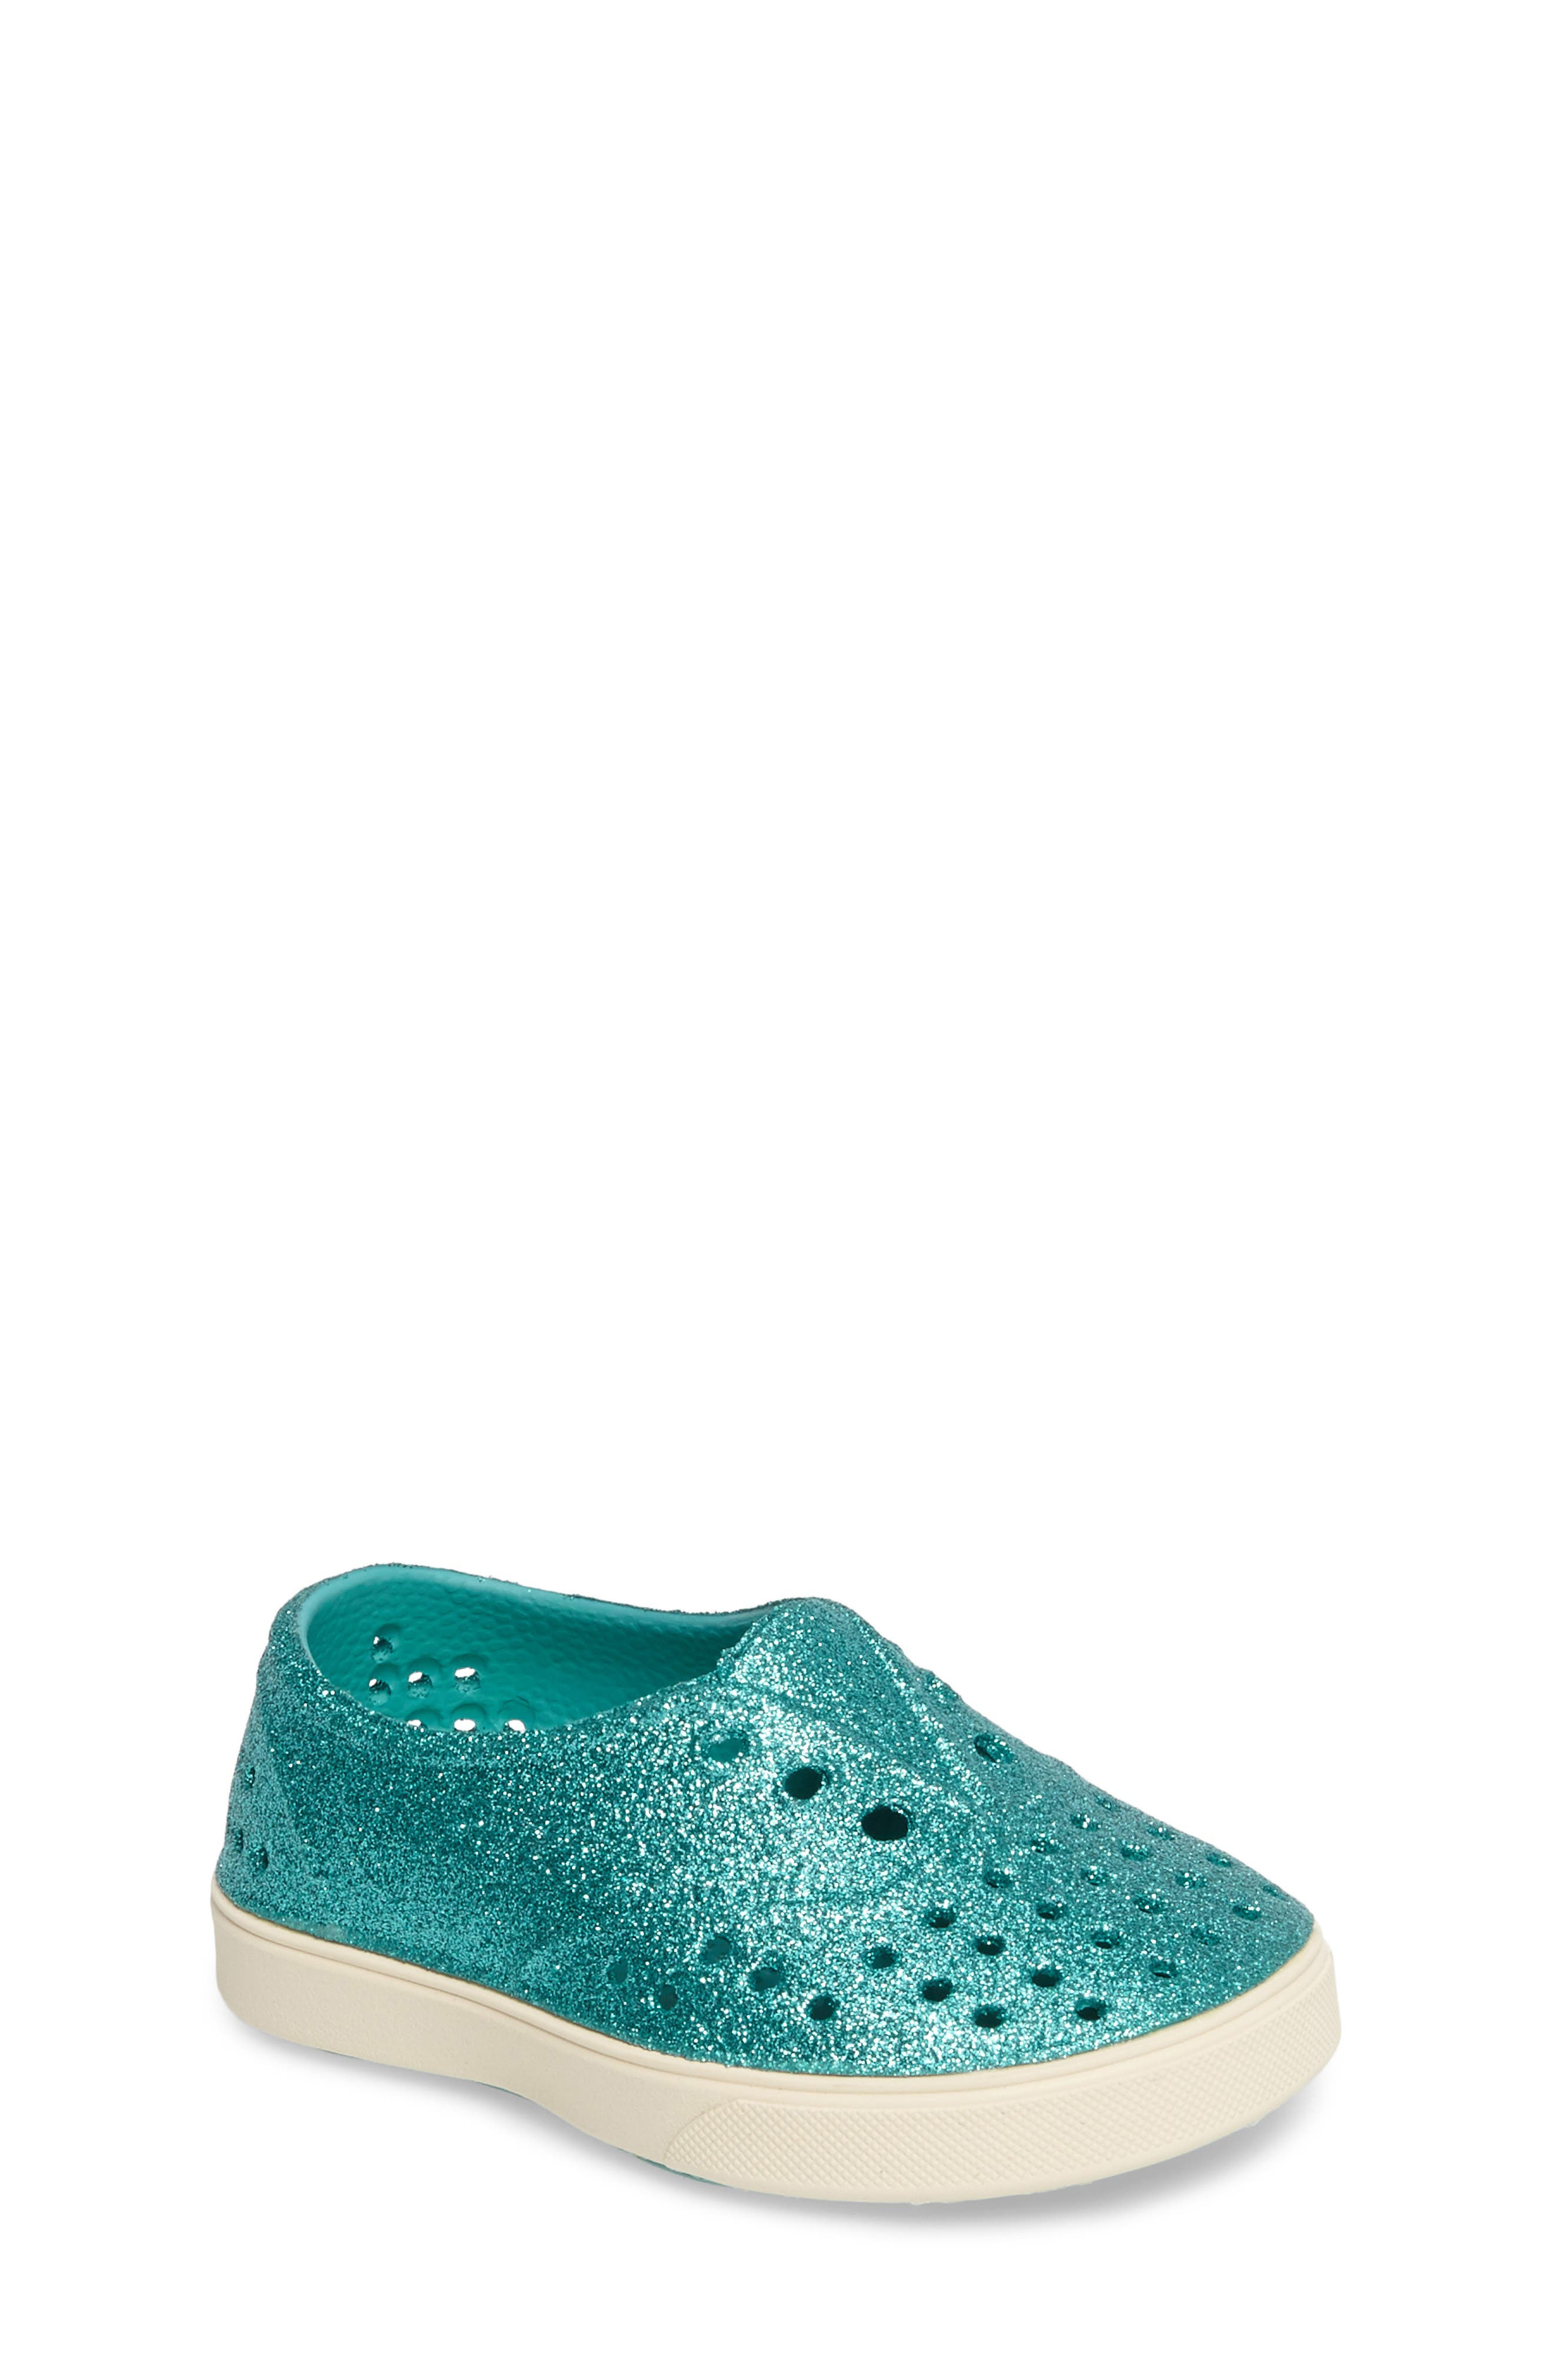 NATIVE SHOES Miller Sparkly Perforated Slip-On